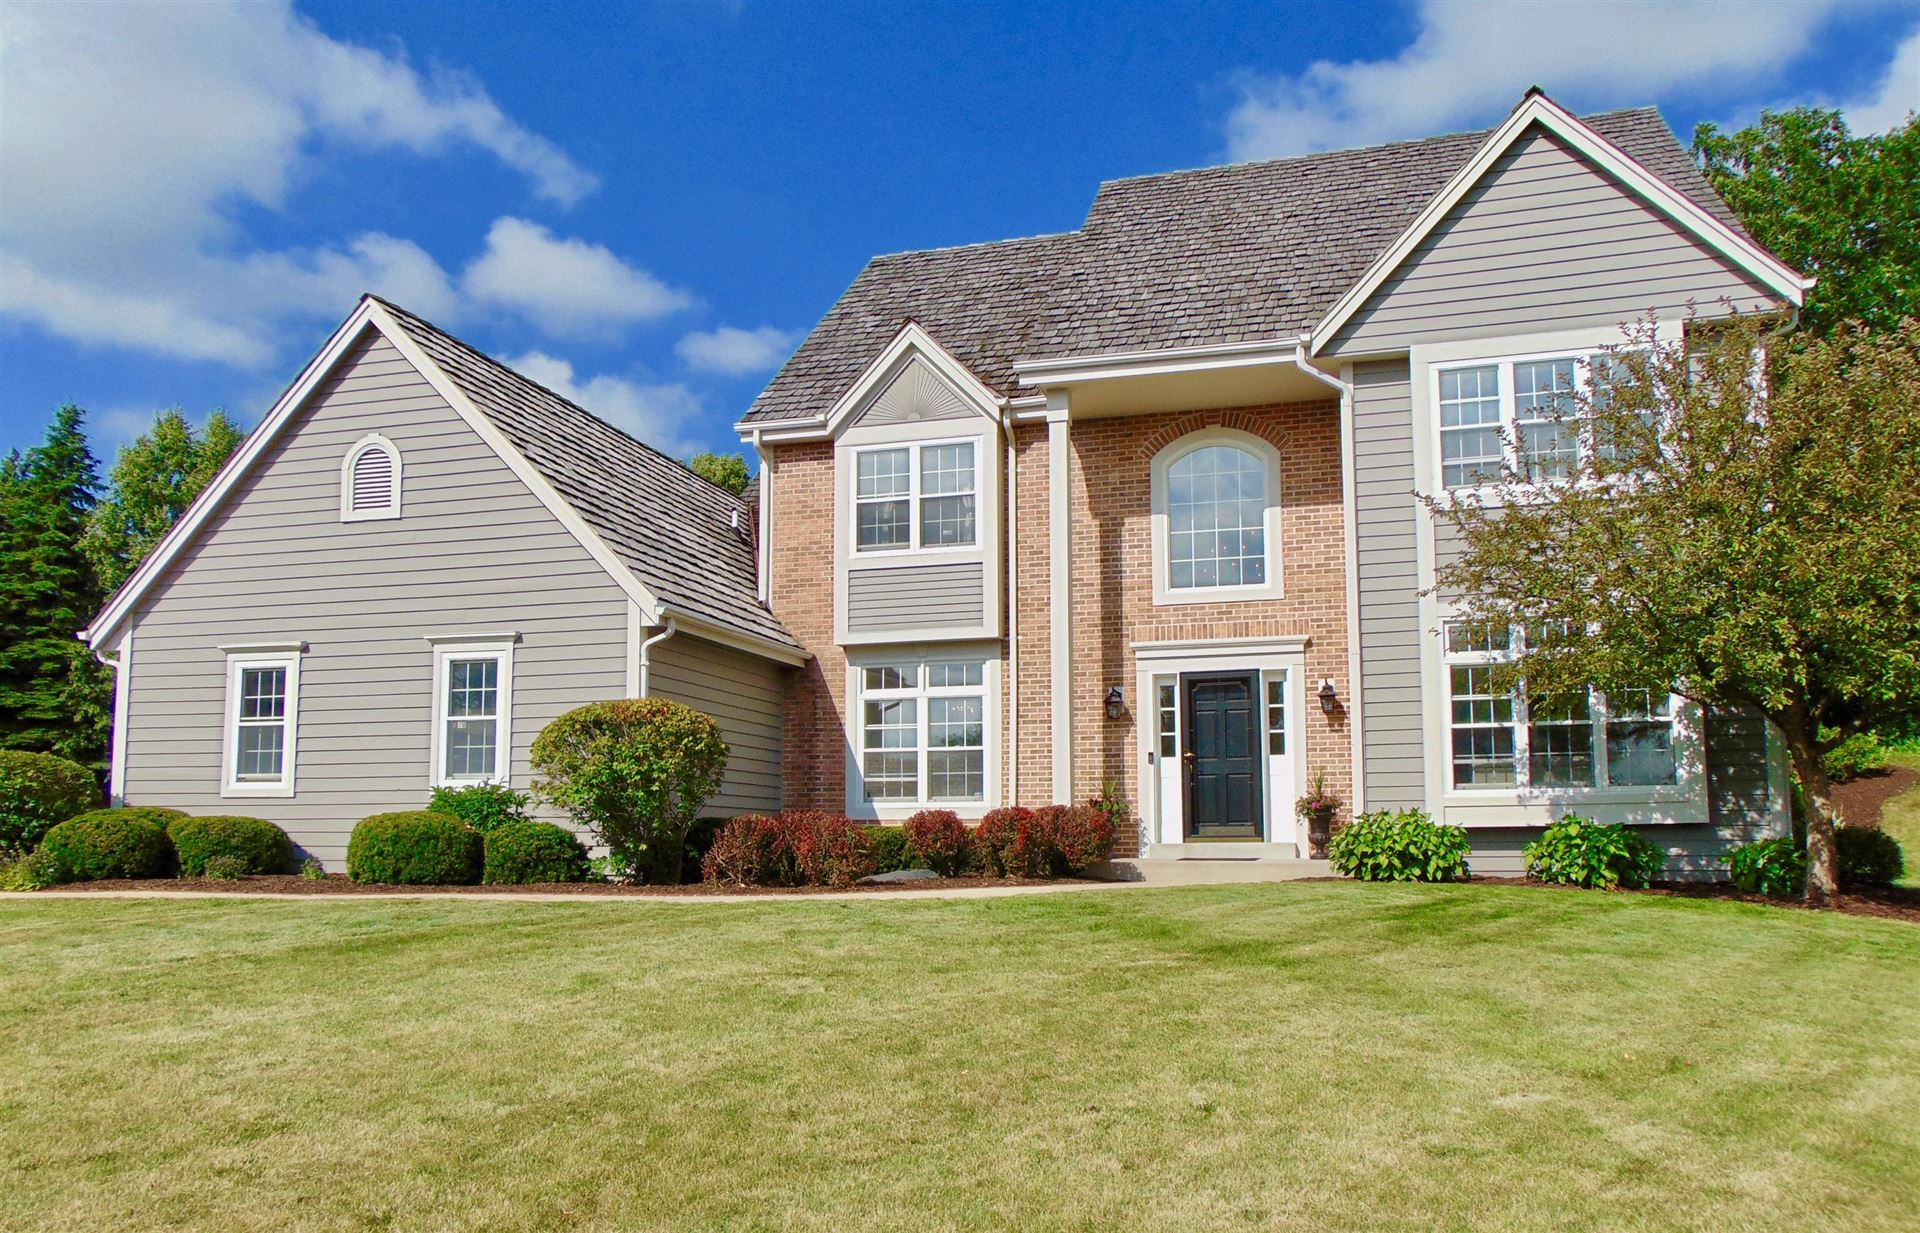 3270 Fordham Ct, Brookfield, WI 53005 - #: 1680586